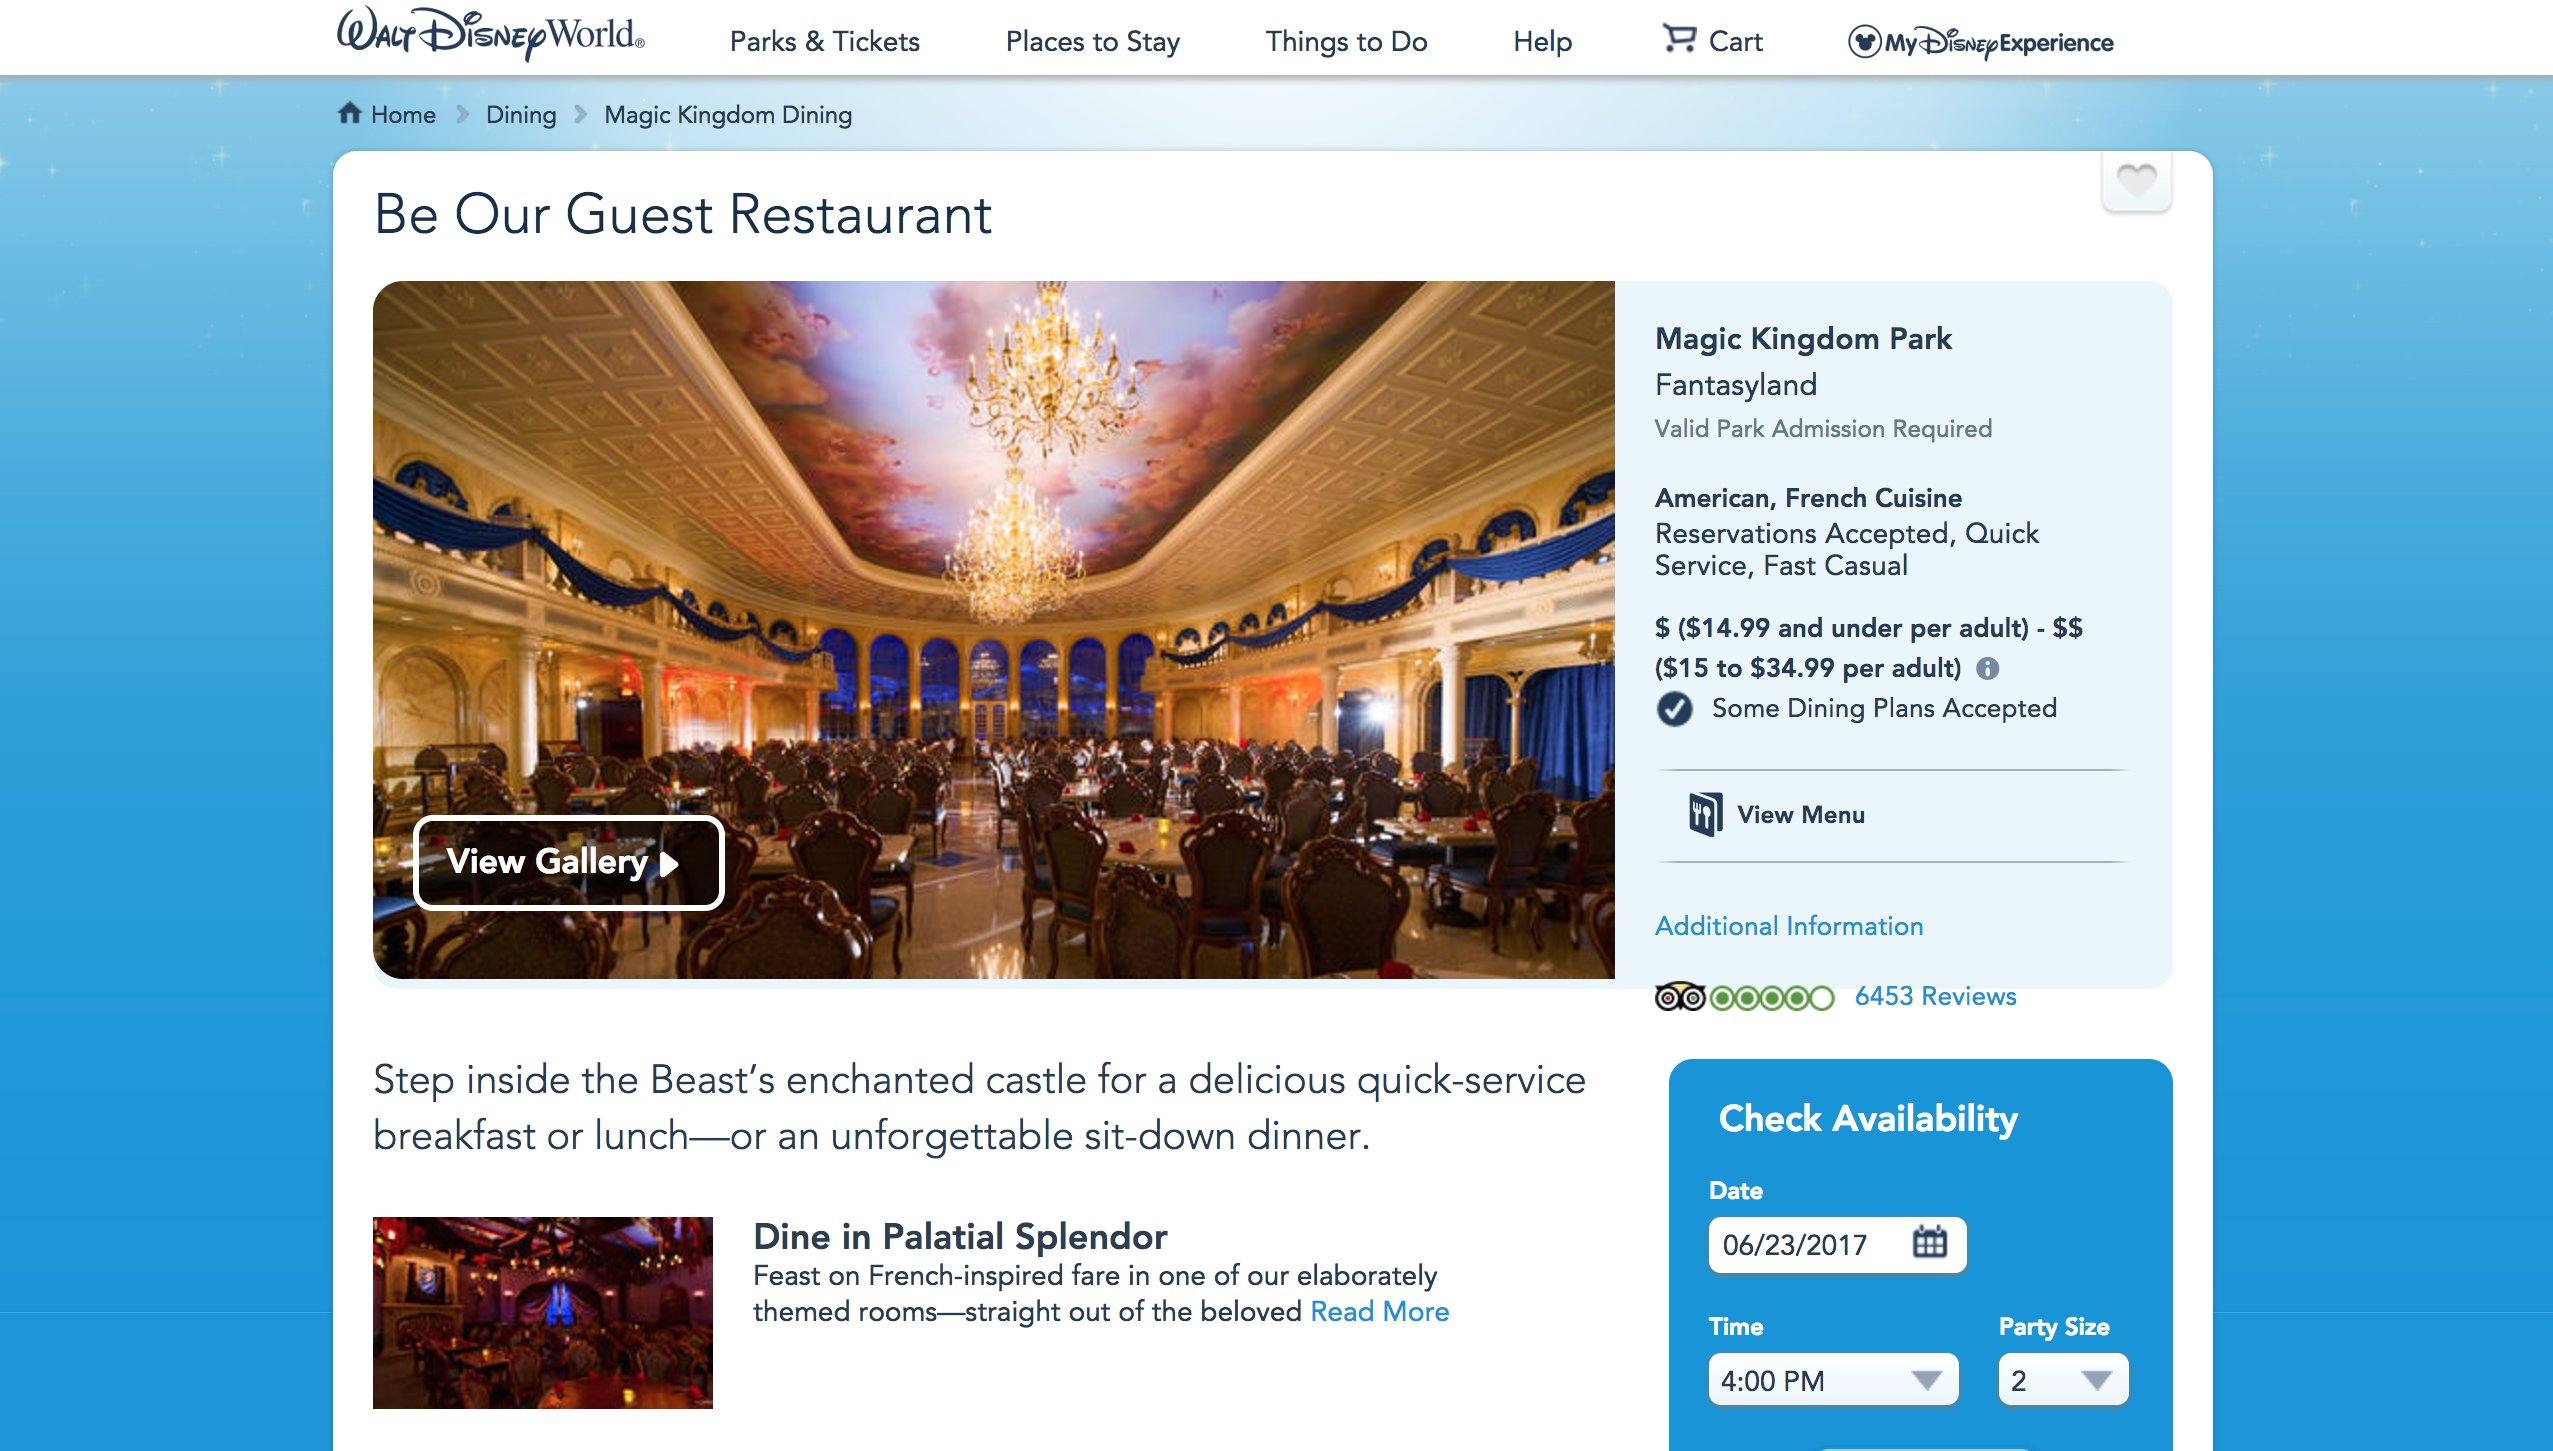 Use disney's web app to book the hardest reservations to get